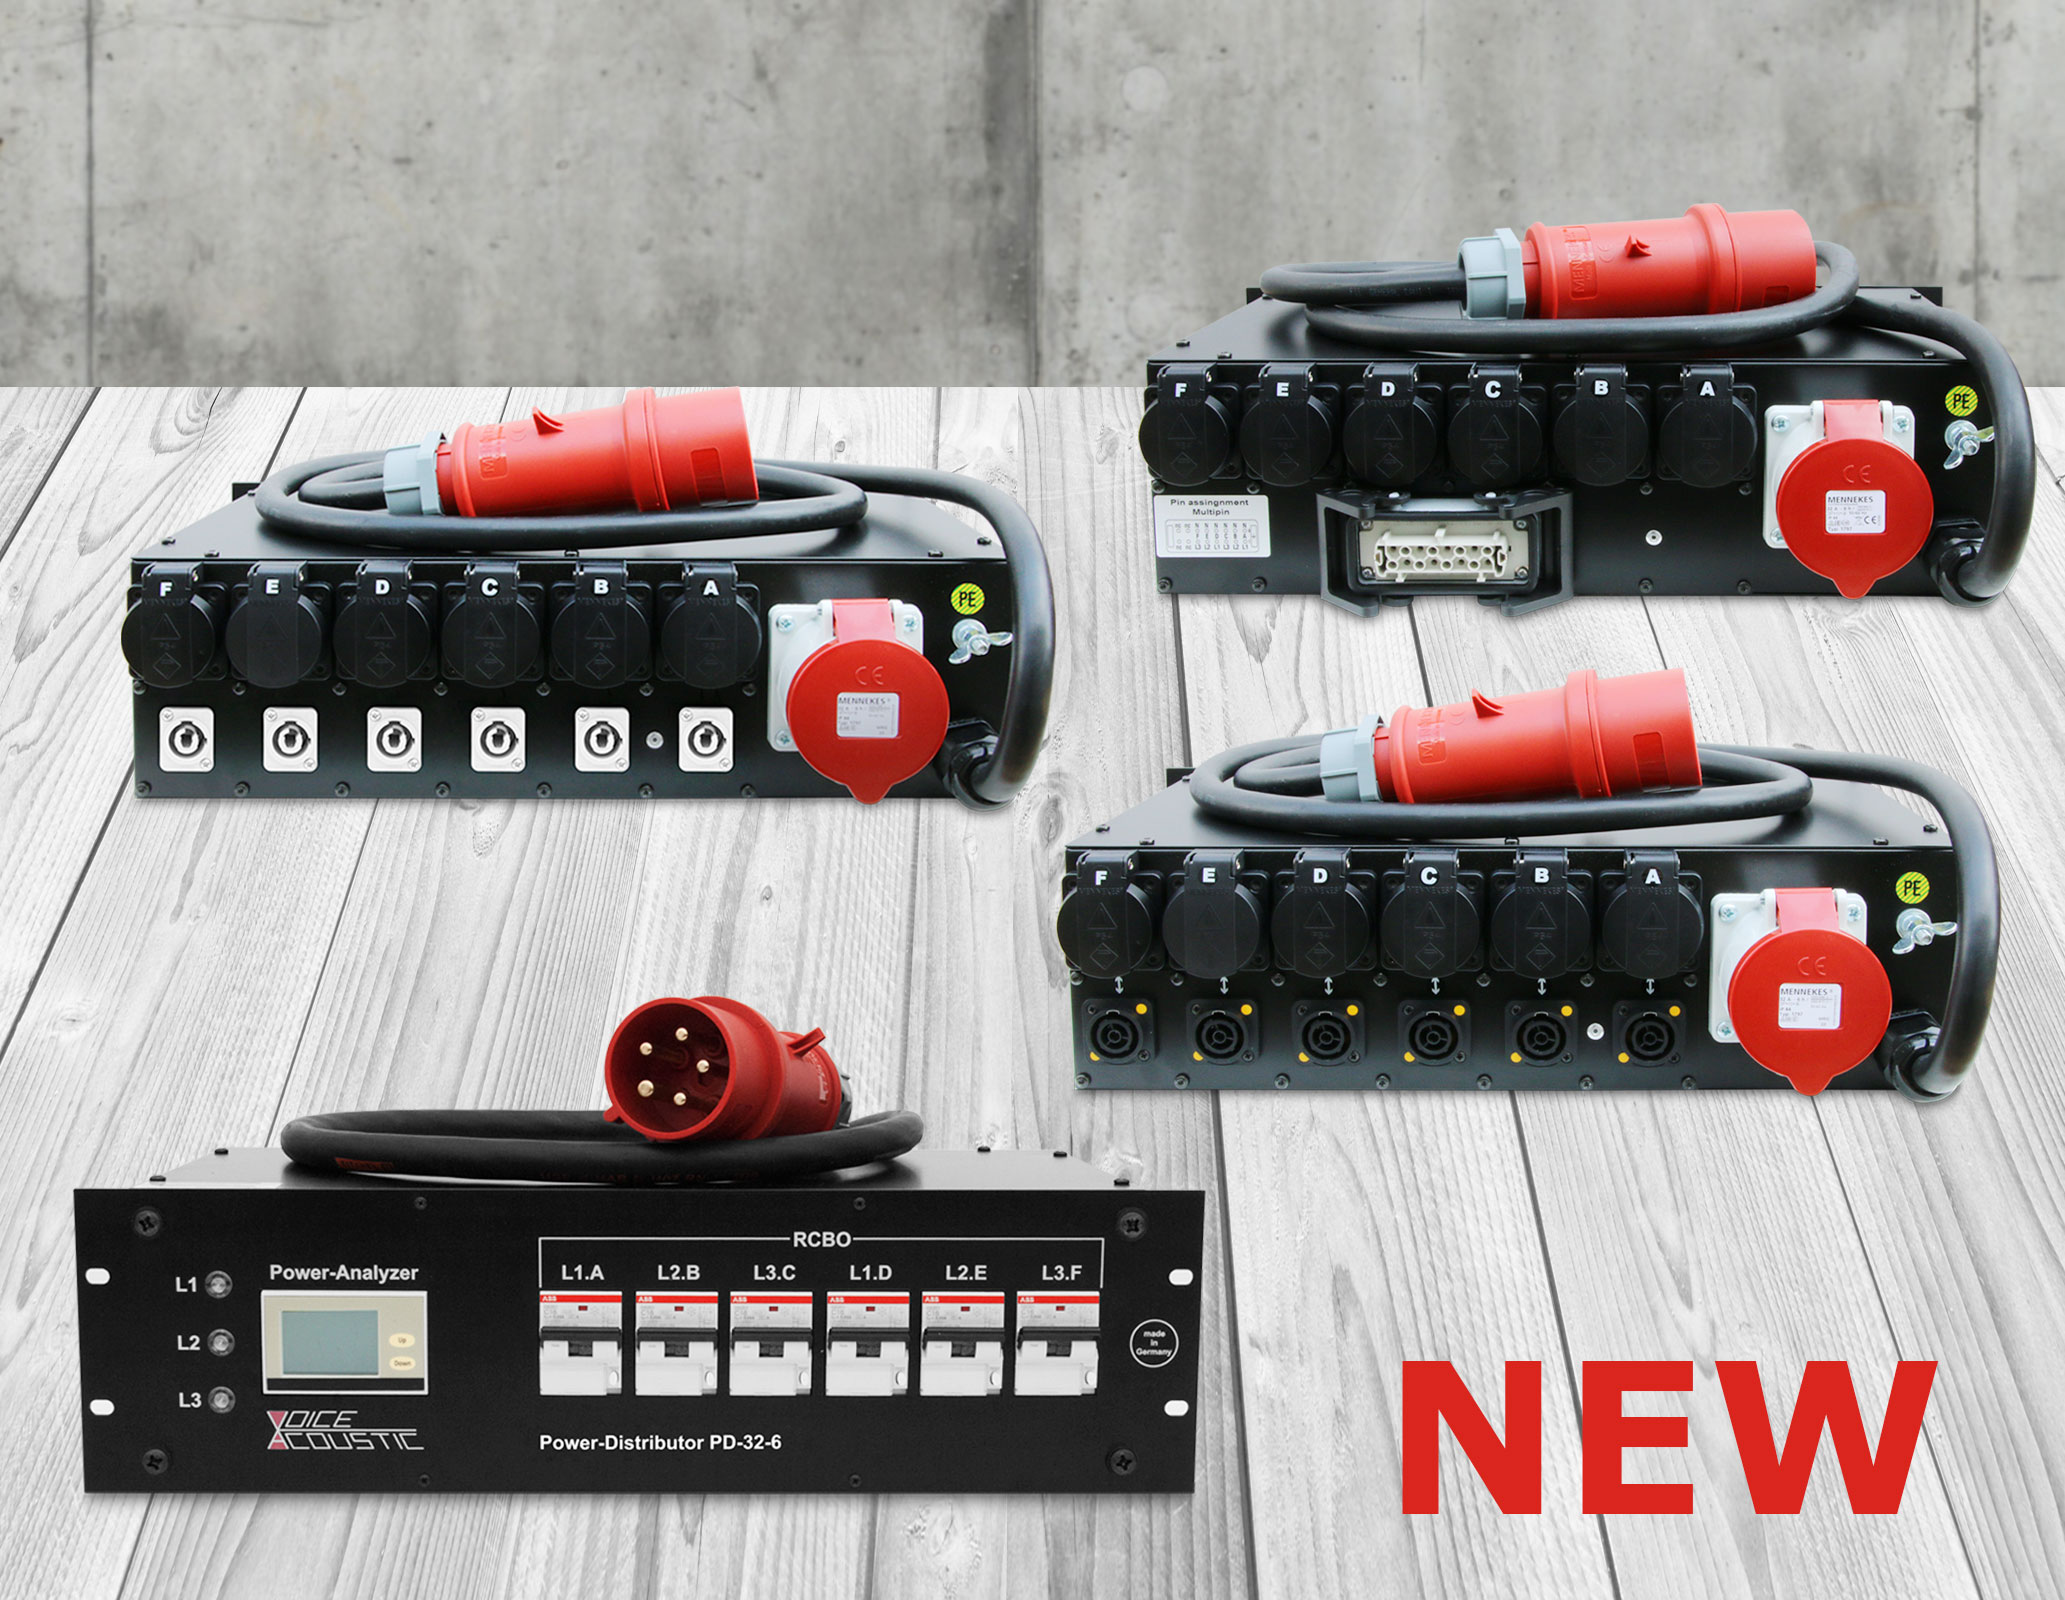 Powerdistributor now in three versions